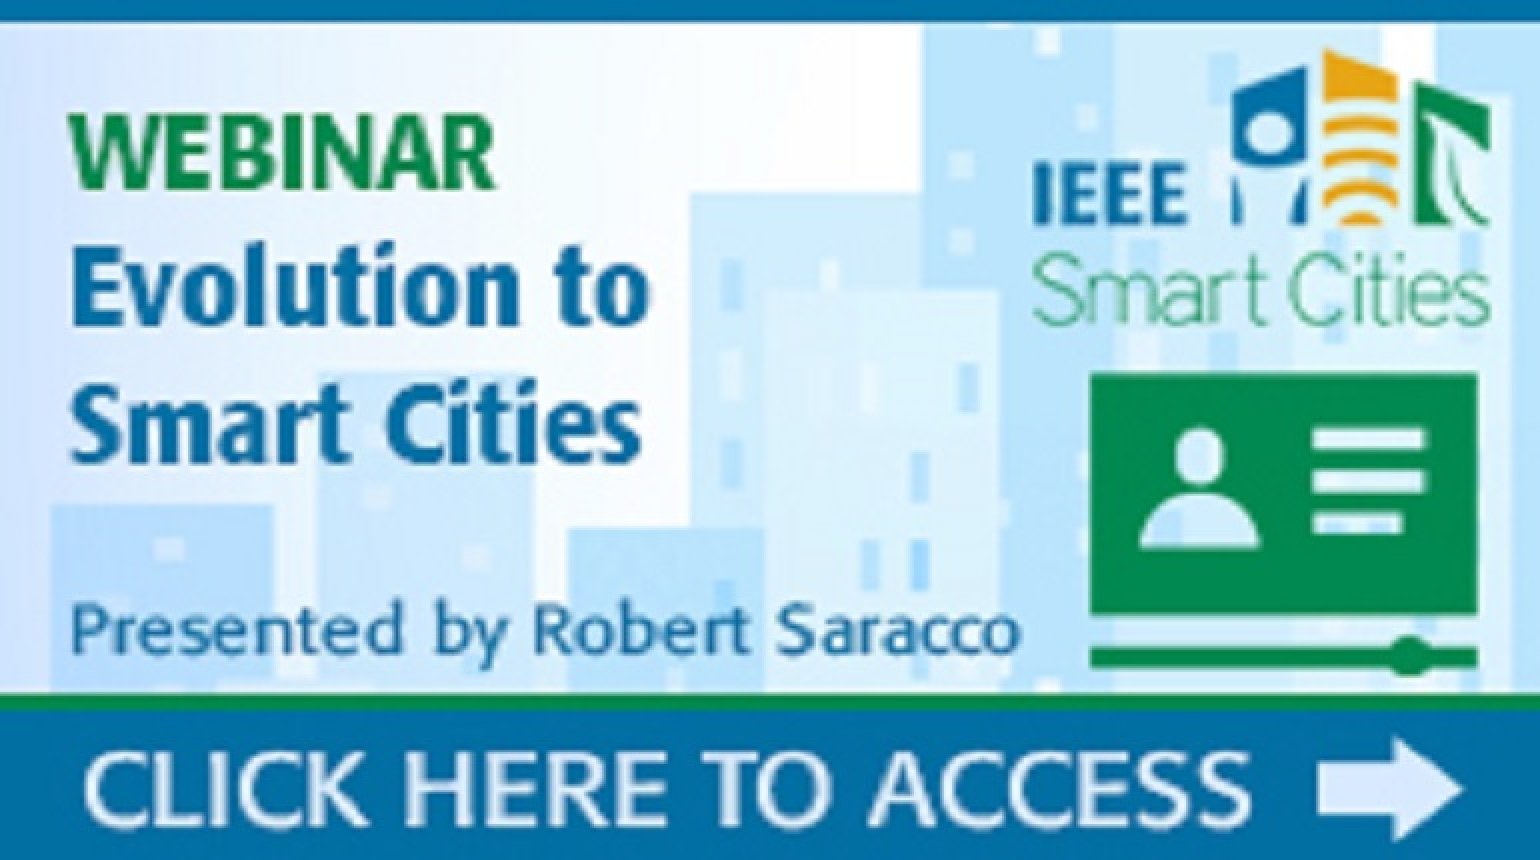 IEEE Smart Cities Webinar - Evolution to Smart Cities